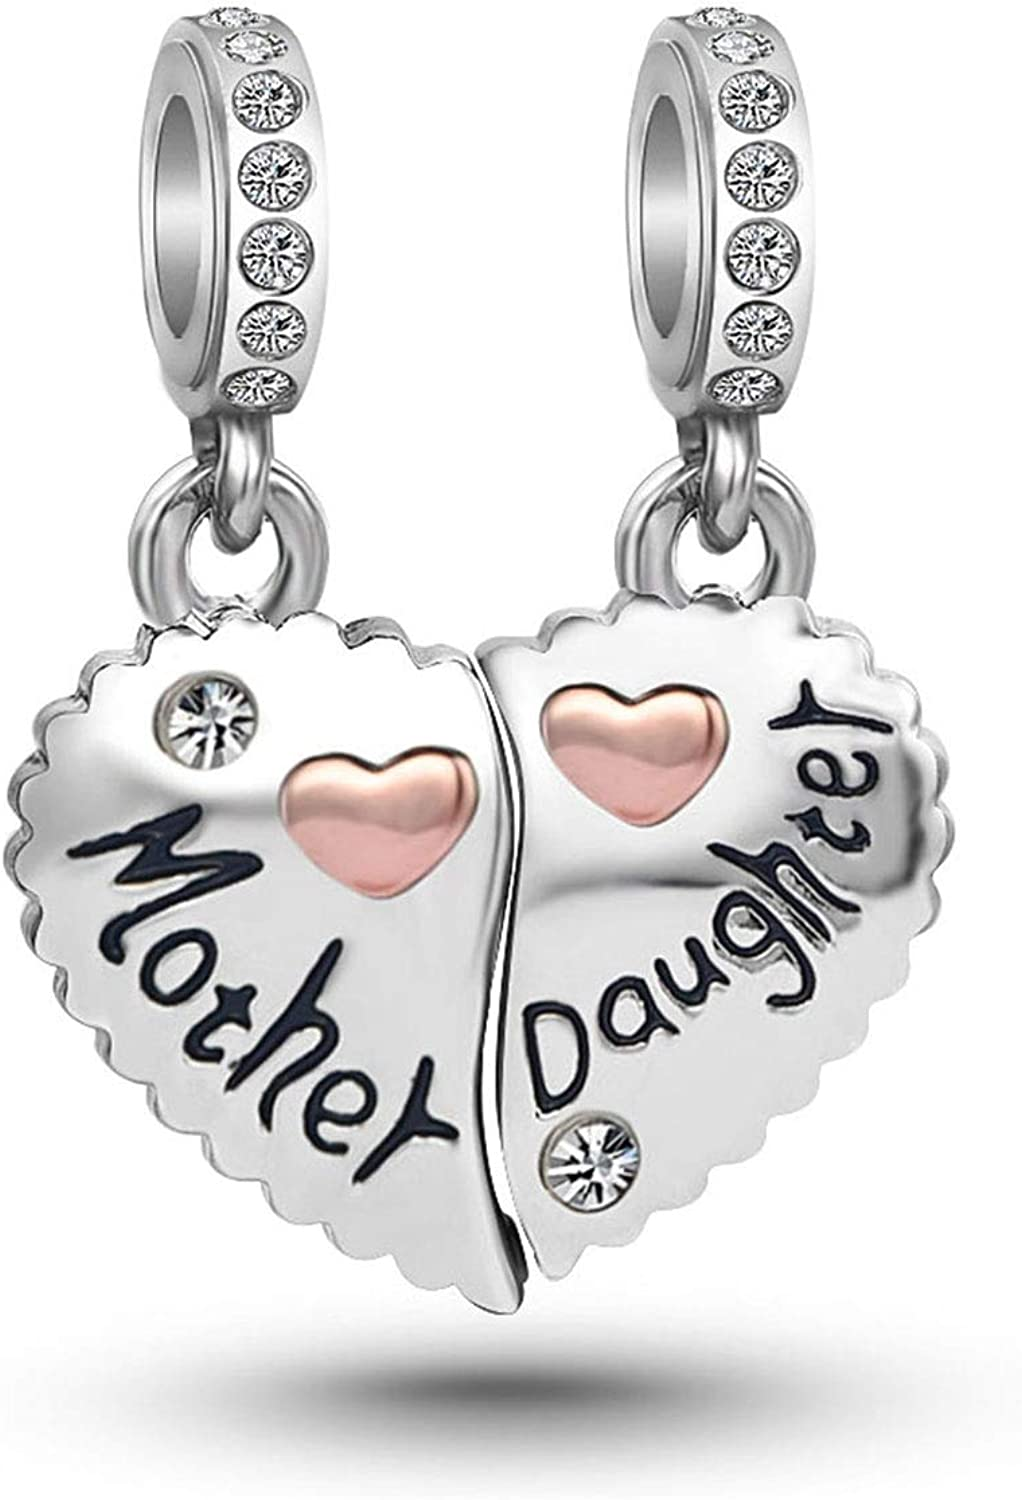 KunBead Mother Daughter and Son Dangle Charms for Bracelets Love Heart Mom Bead Charm Set for Necklace